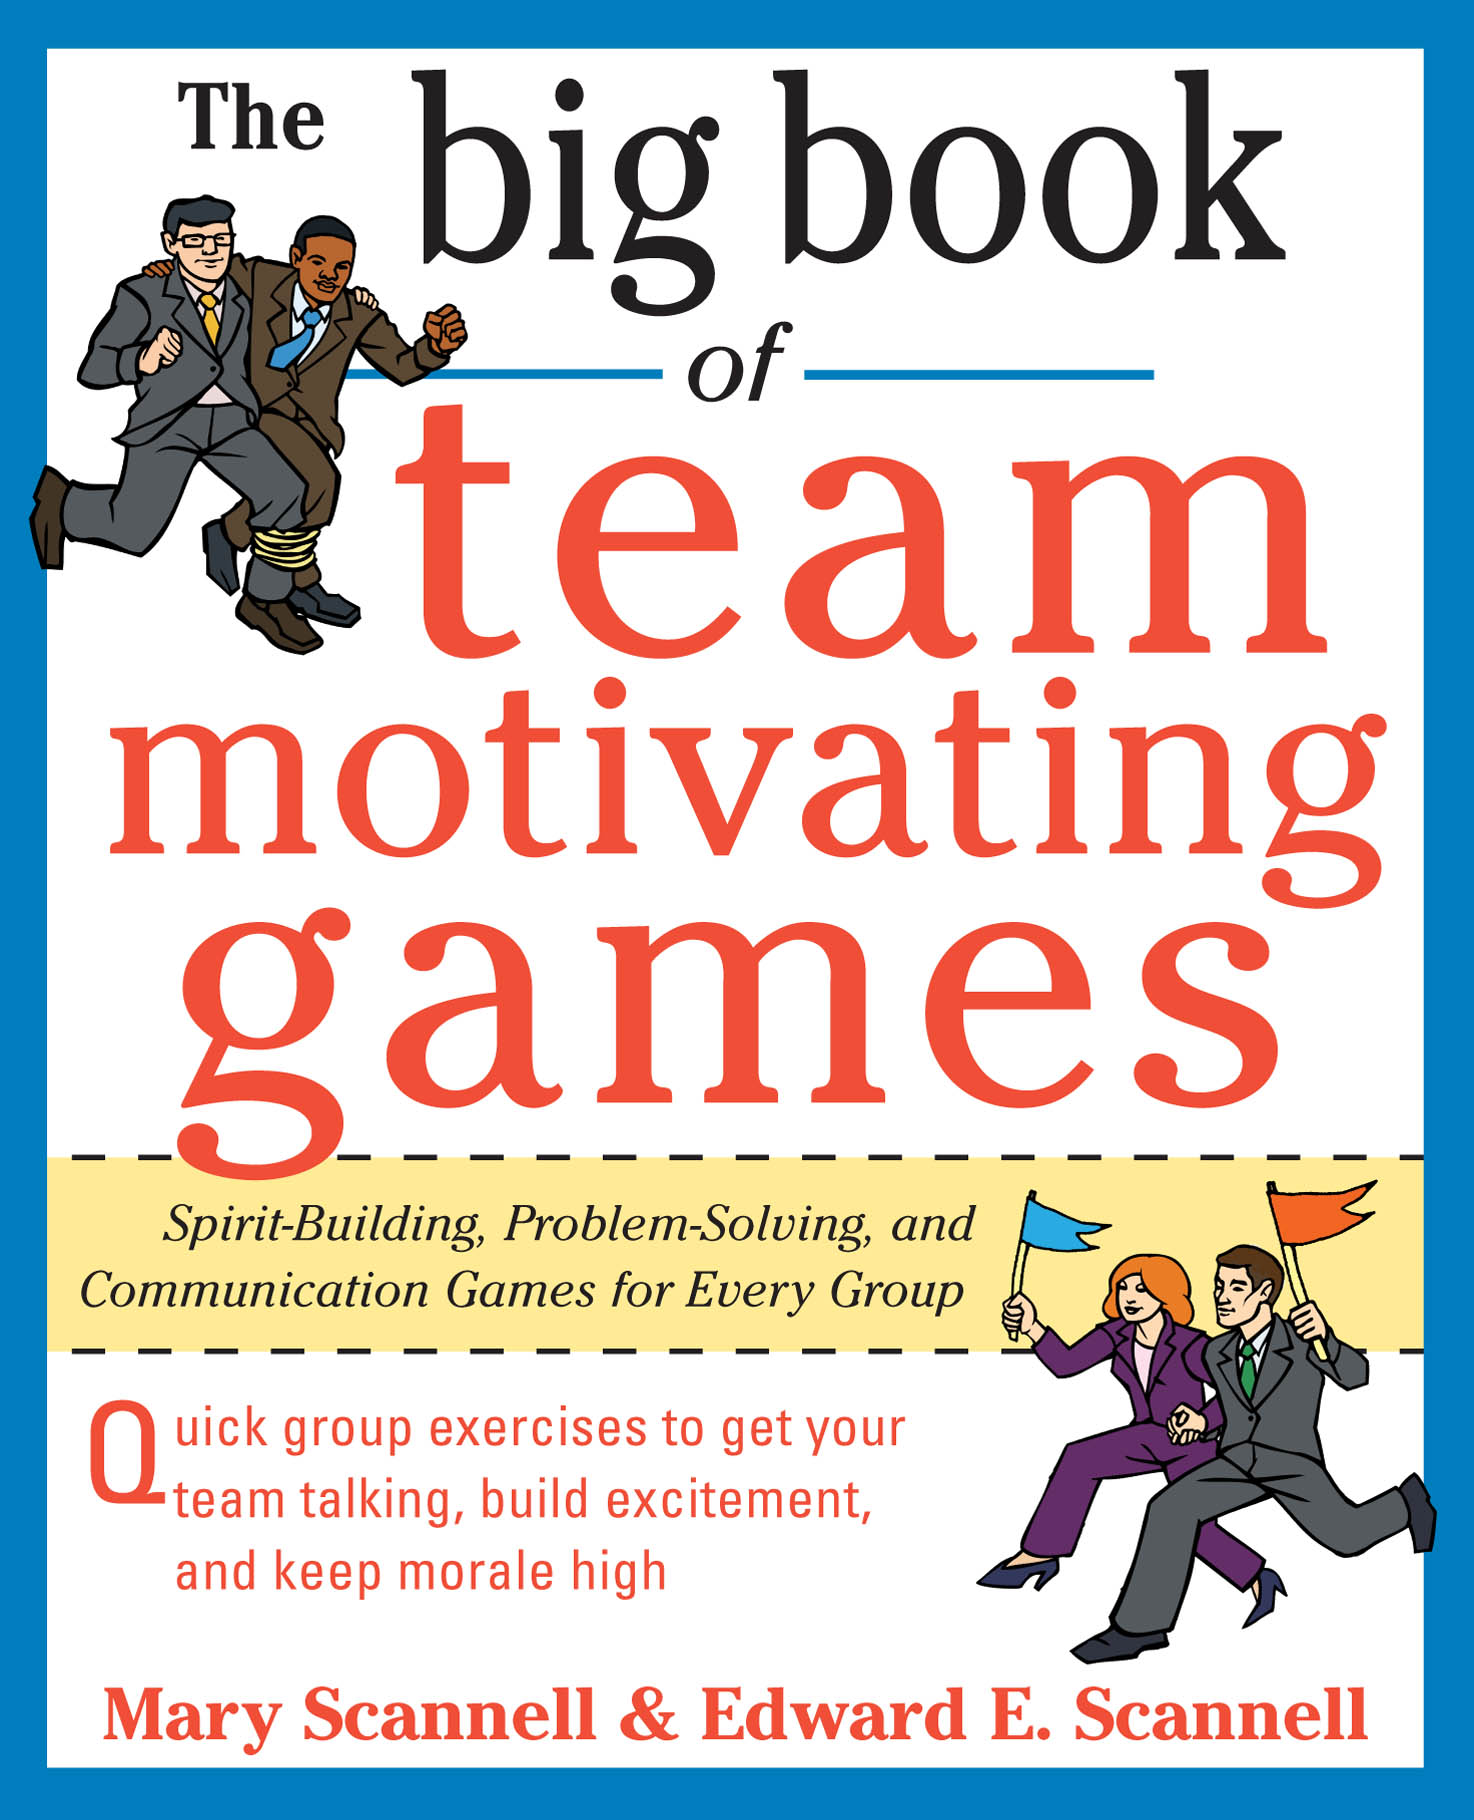 Download Ebook The Big Book of Team-Motivating Games: Spirit-Building, Problem-Solving and Communication Games for Every Group by Mary Scannell Pdf